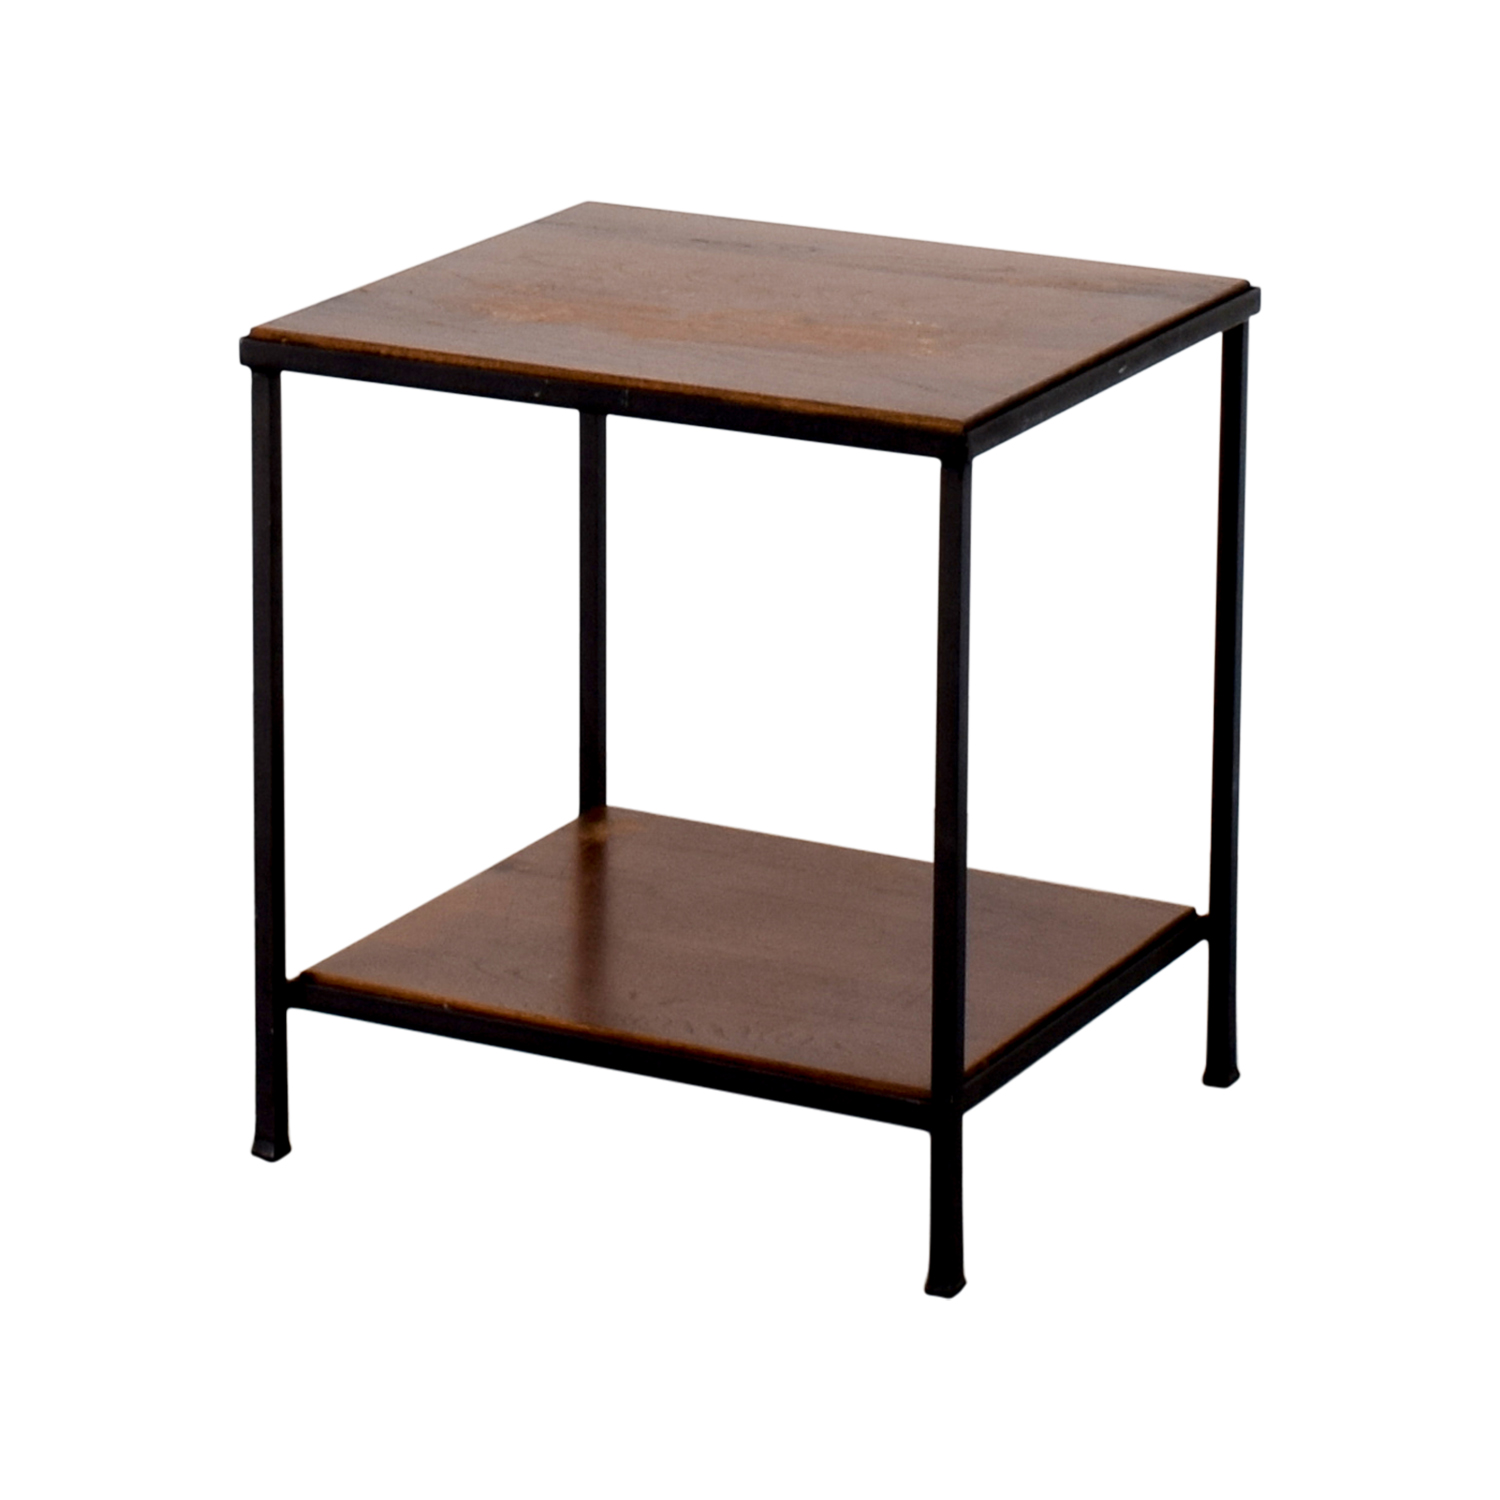 Pottery Barn Wood Table: Pottery Barn Pottery Barn Wood And Metal Side